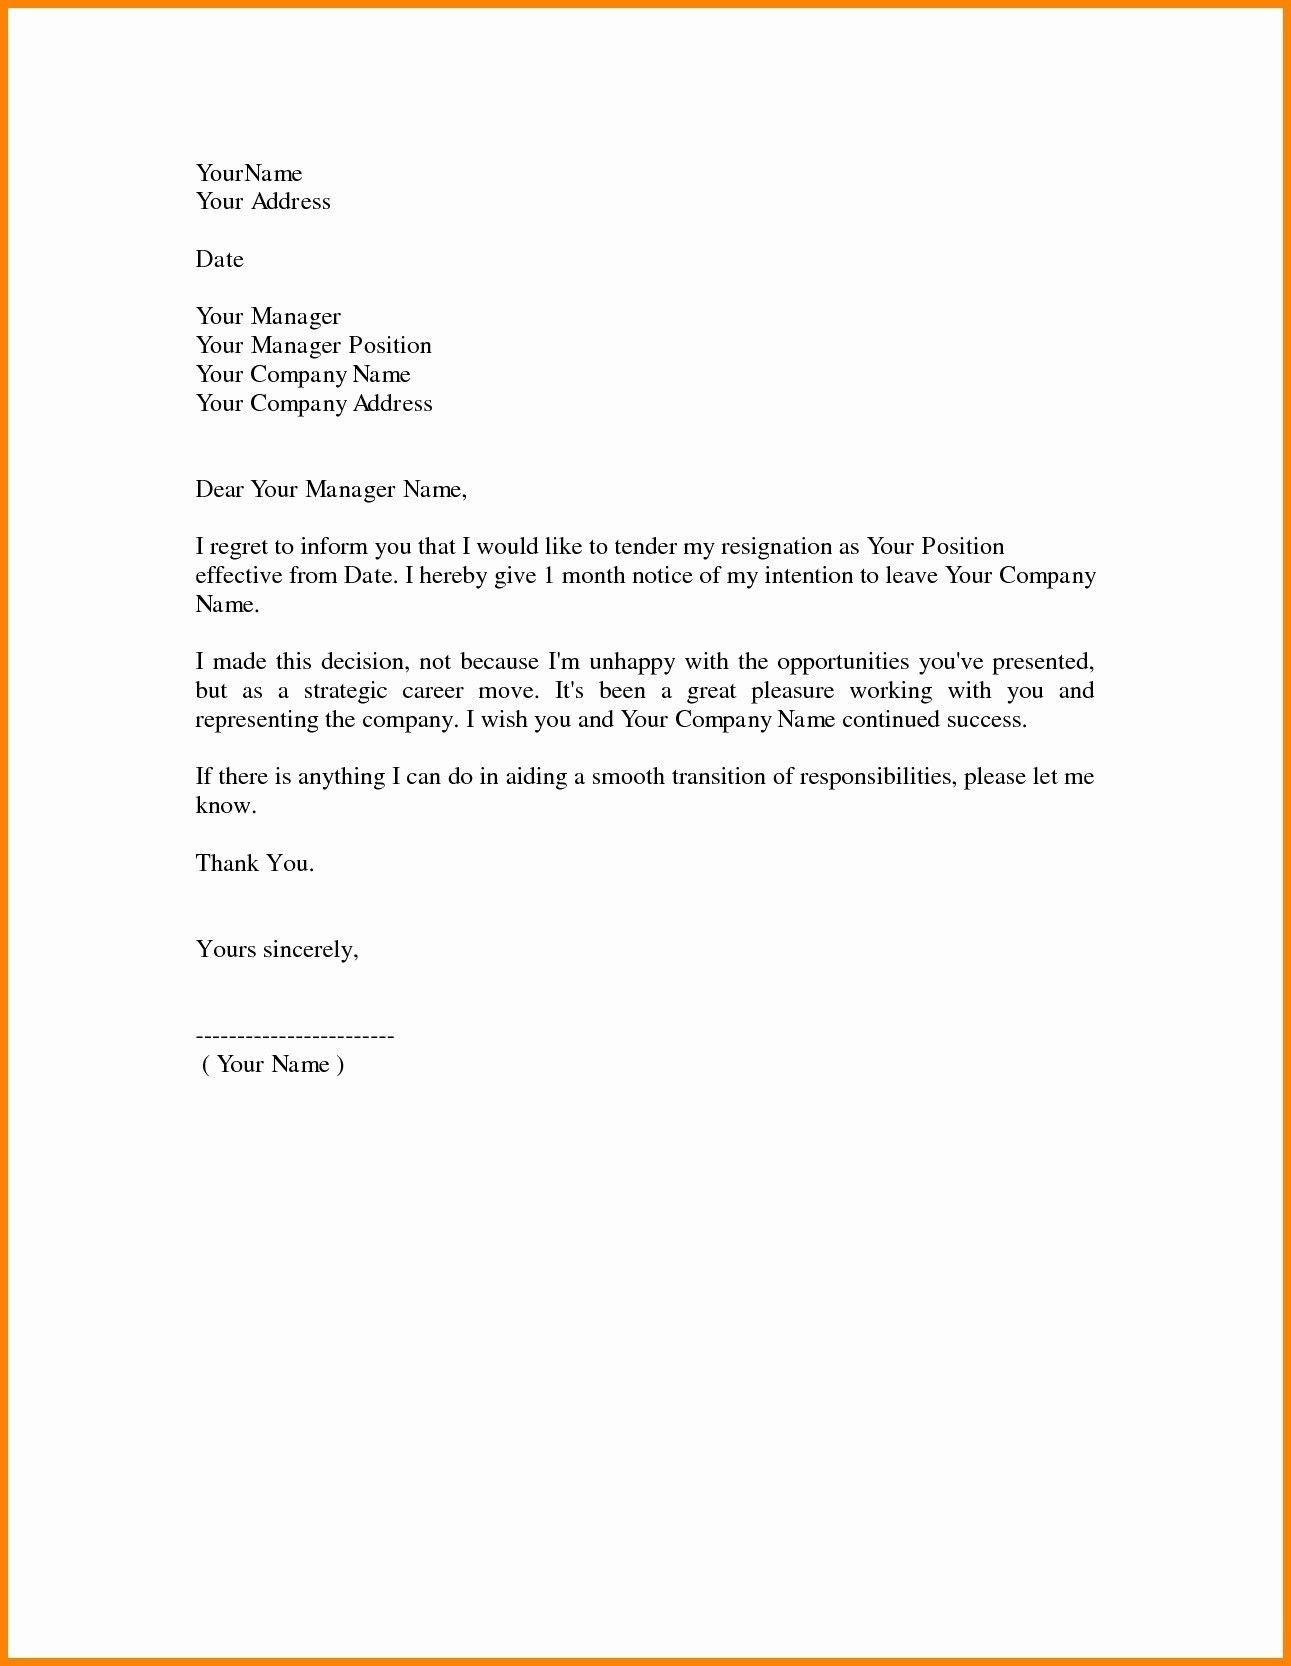 000 Remarkable Template For Letter Of Resignation Idea  Free With Notice Period WordFull